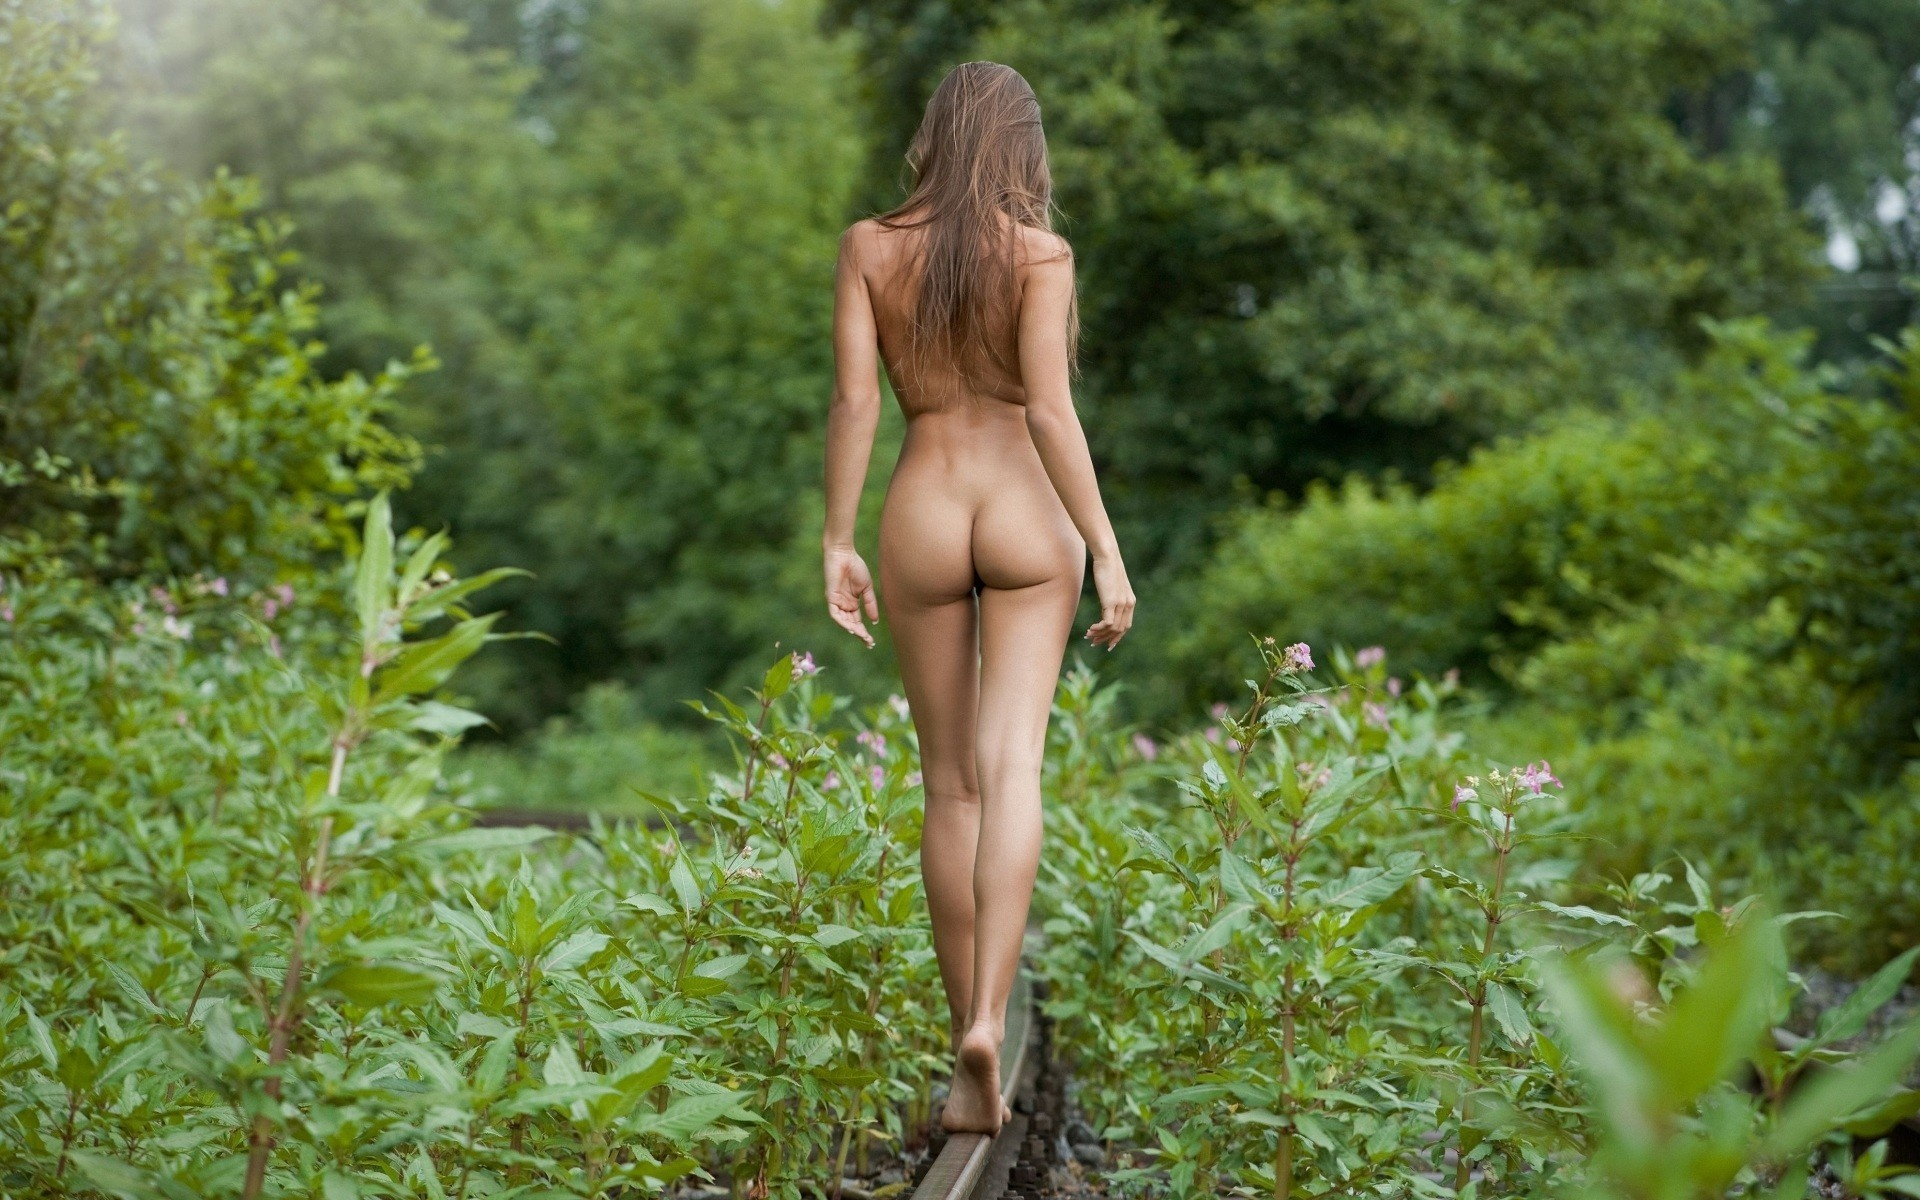 perfect_ass_in_nature-1920x1200.jpg